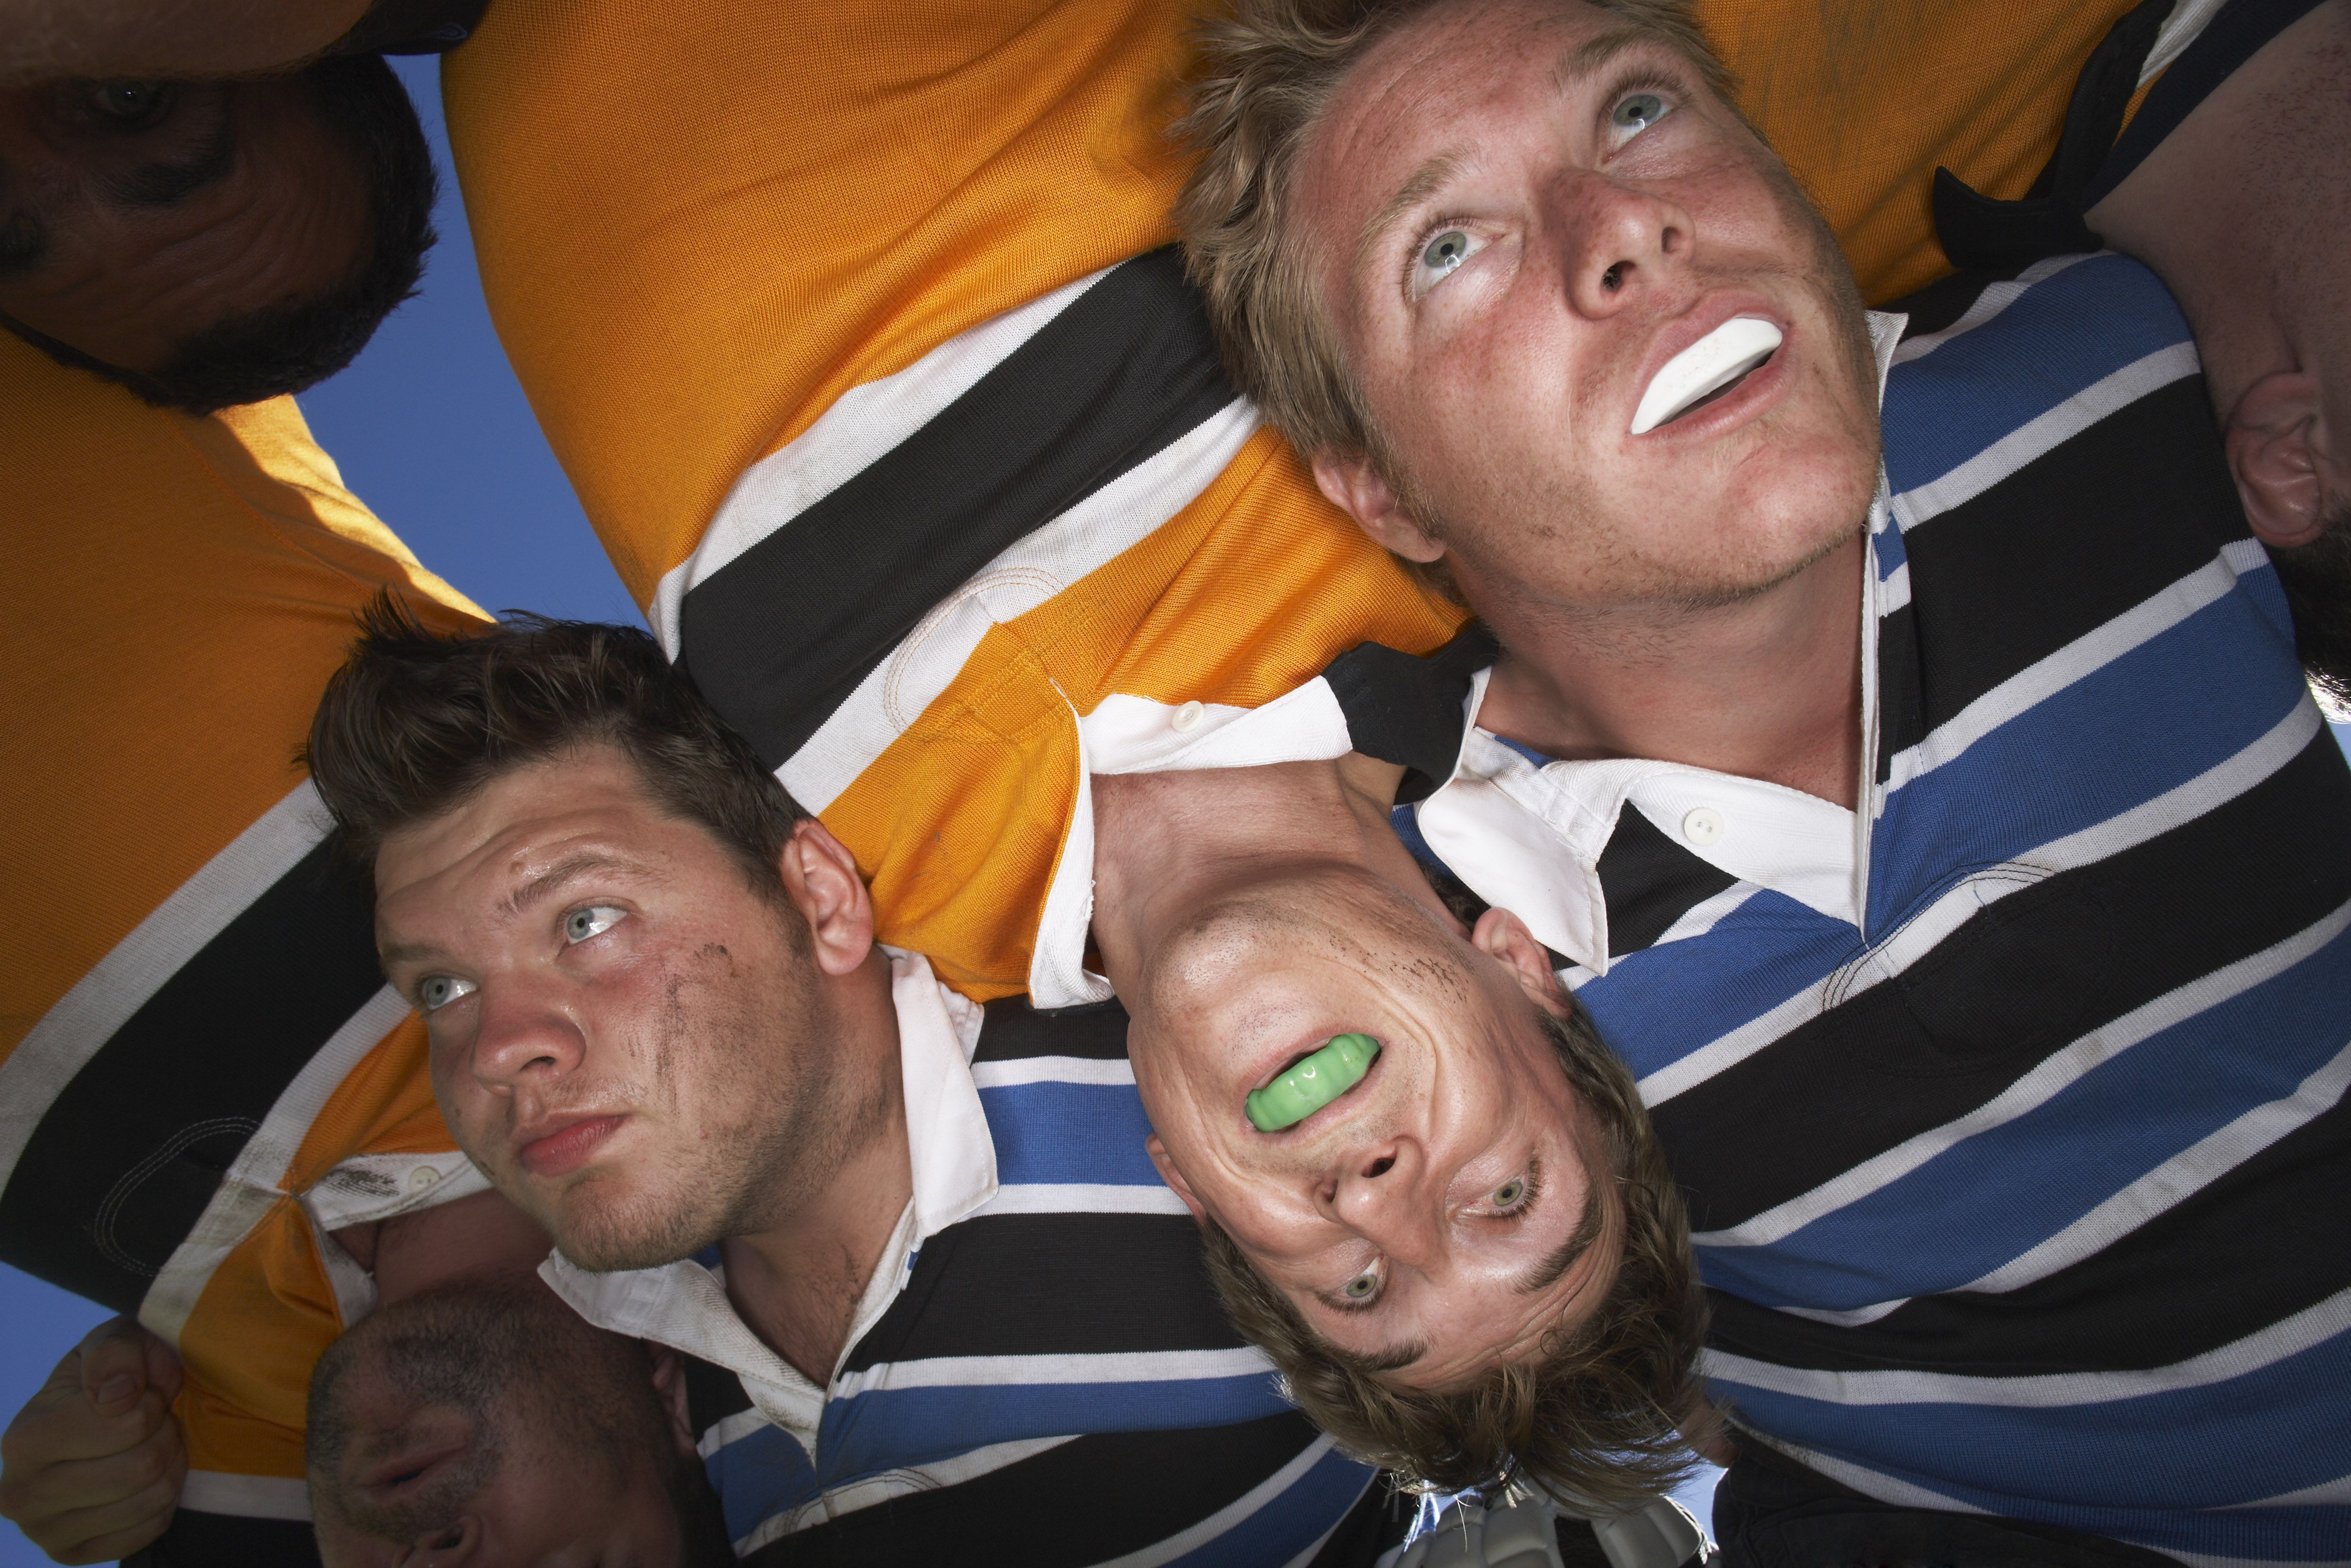 Rugby players with mouth guards huddling